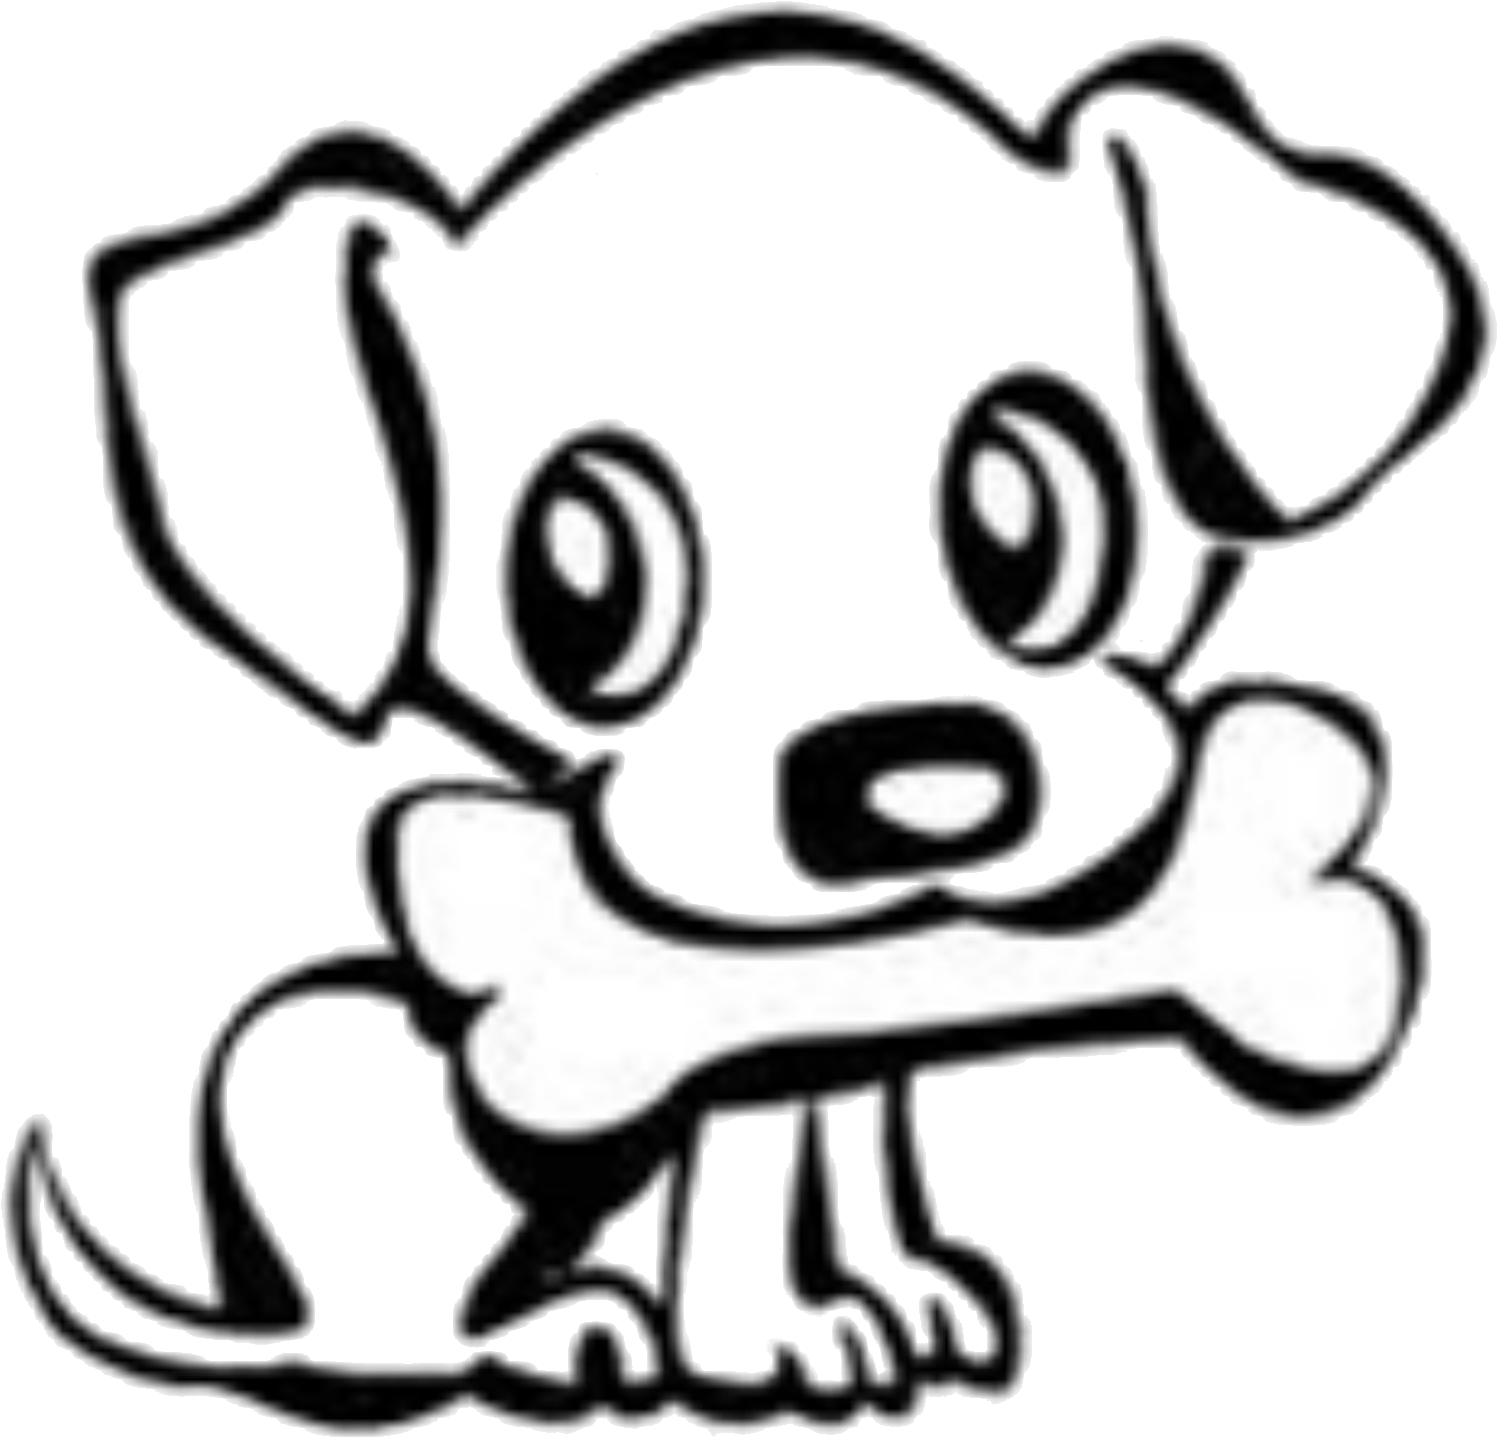 hight resolution of dog bone drawings group banner download cute dog easy drawing clipart 1761x1674